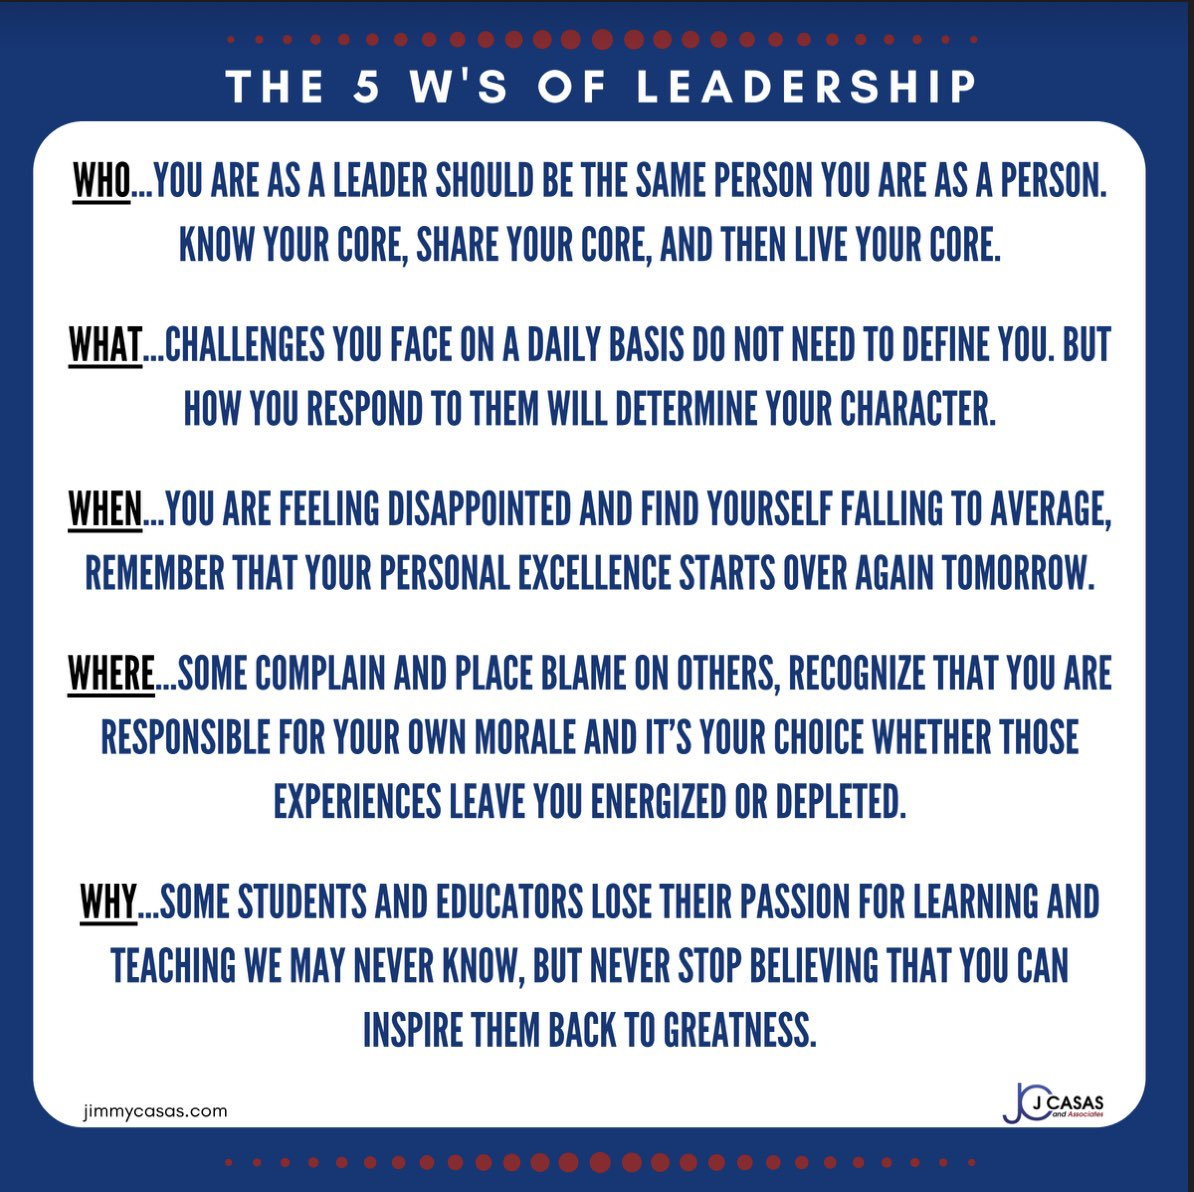 The 5 We's of Leadership by @casas_jimmy #LiveYourExcellence #Culturize #Leaders